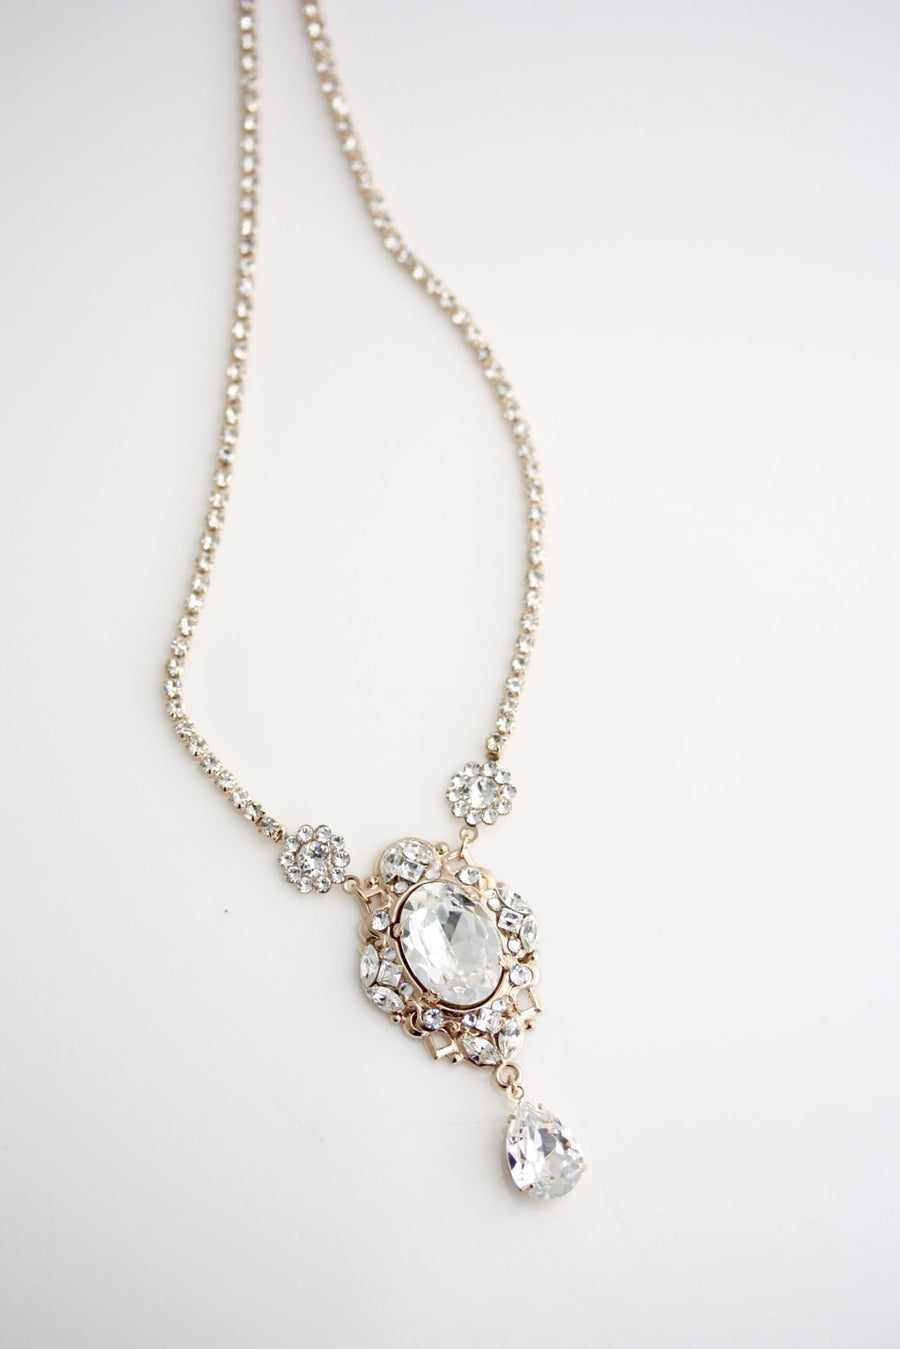 CRYSTAL RYAN BRIDAL NECKLACE - Lulu Splendor